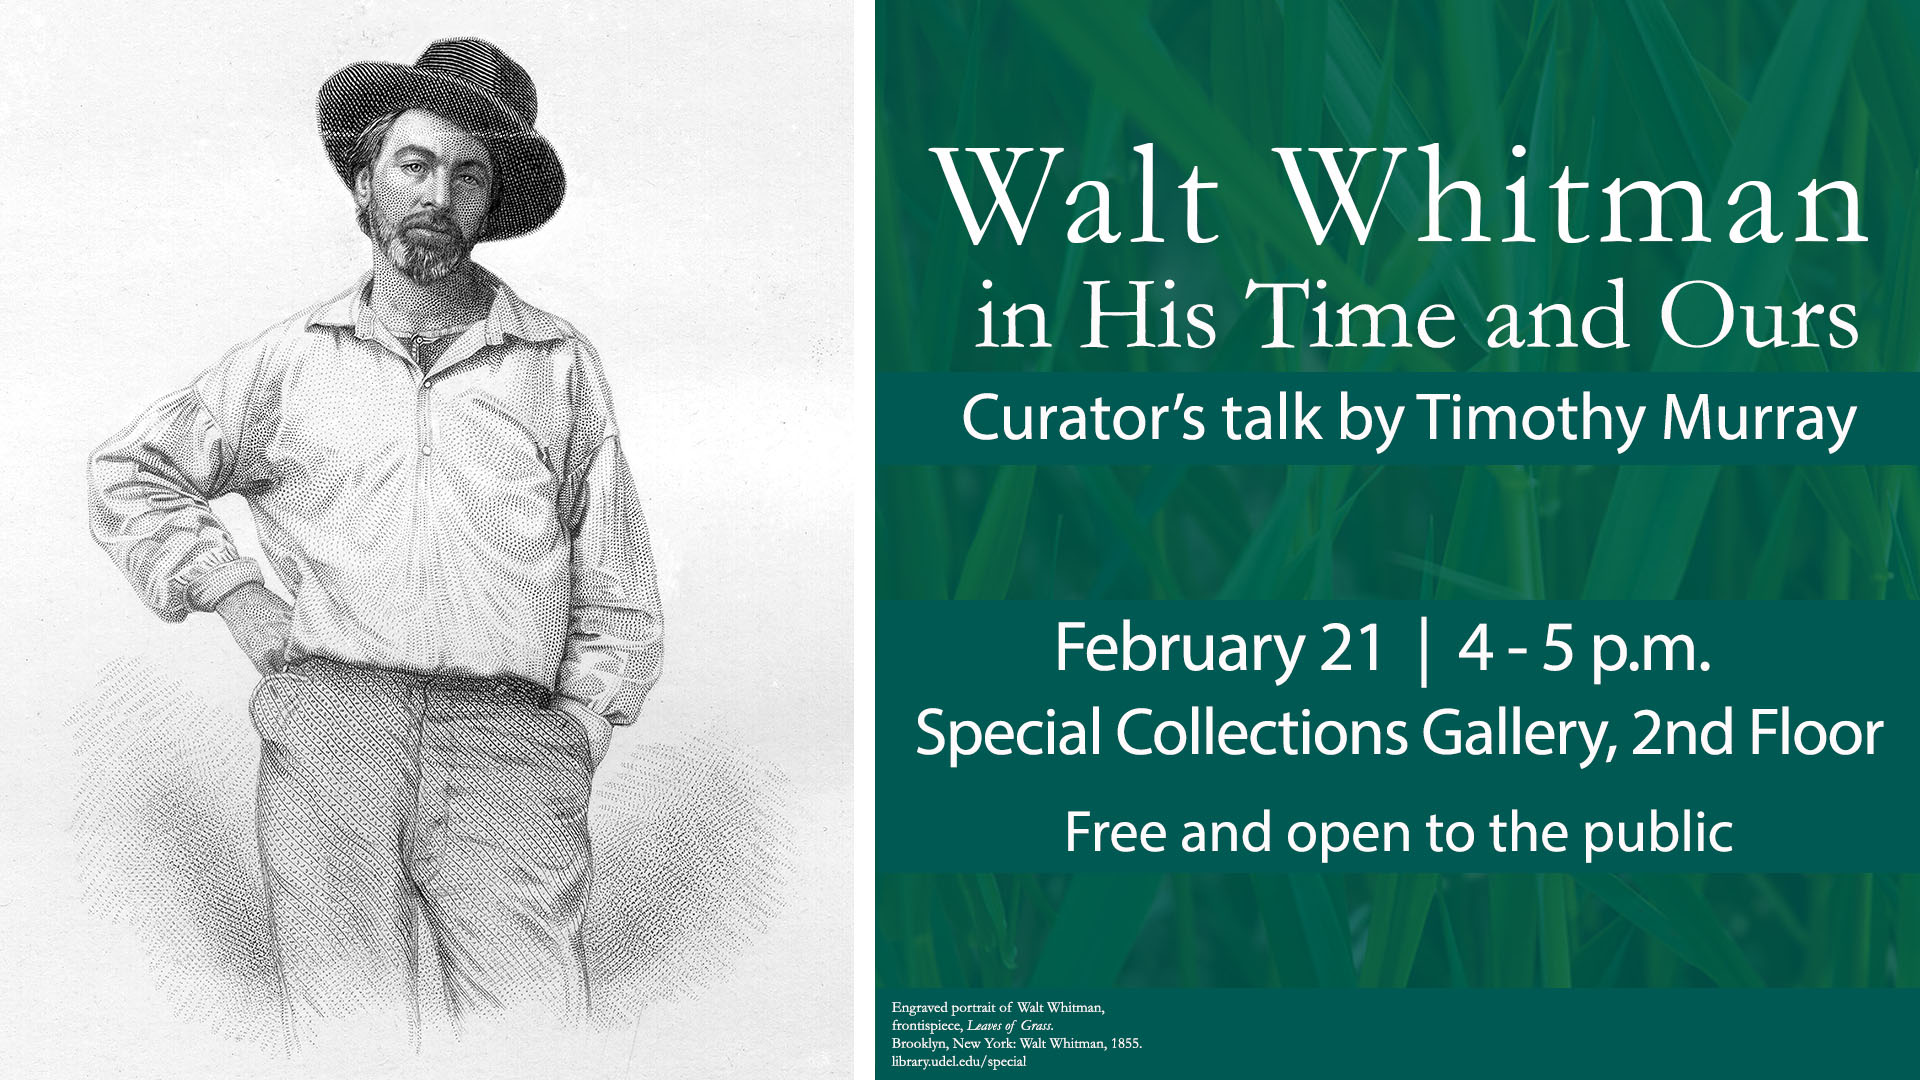 Curator's Talk: Walt Whitman in His Time and Ours